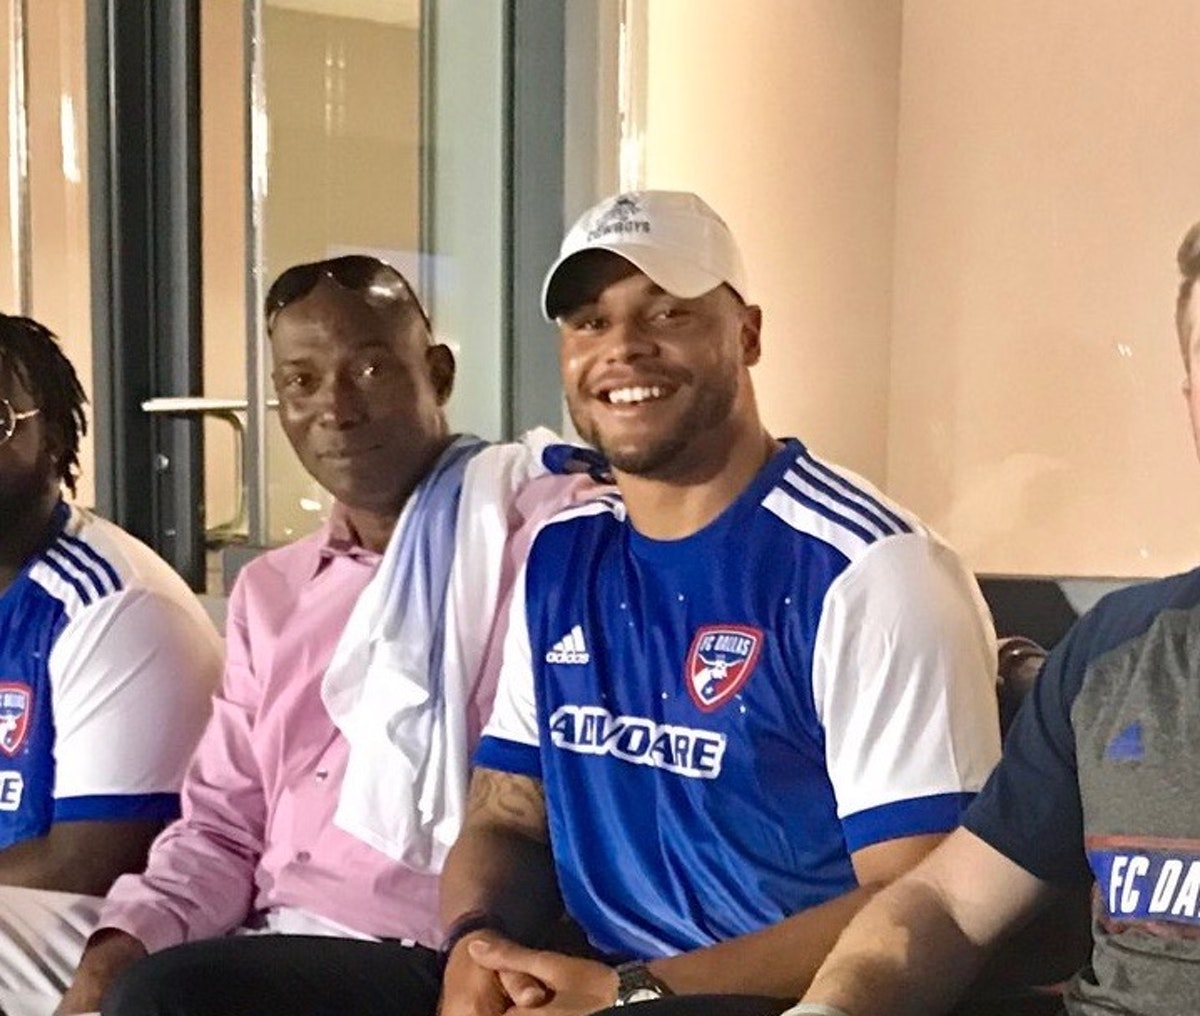 Dak Prescott back in town with his father at FC Dallas home opener ...